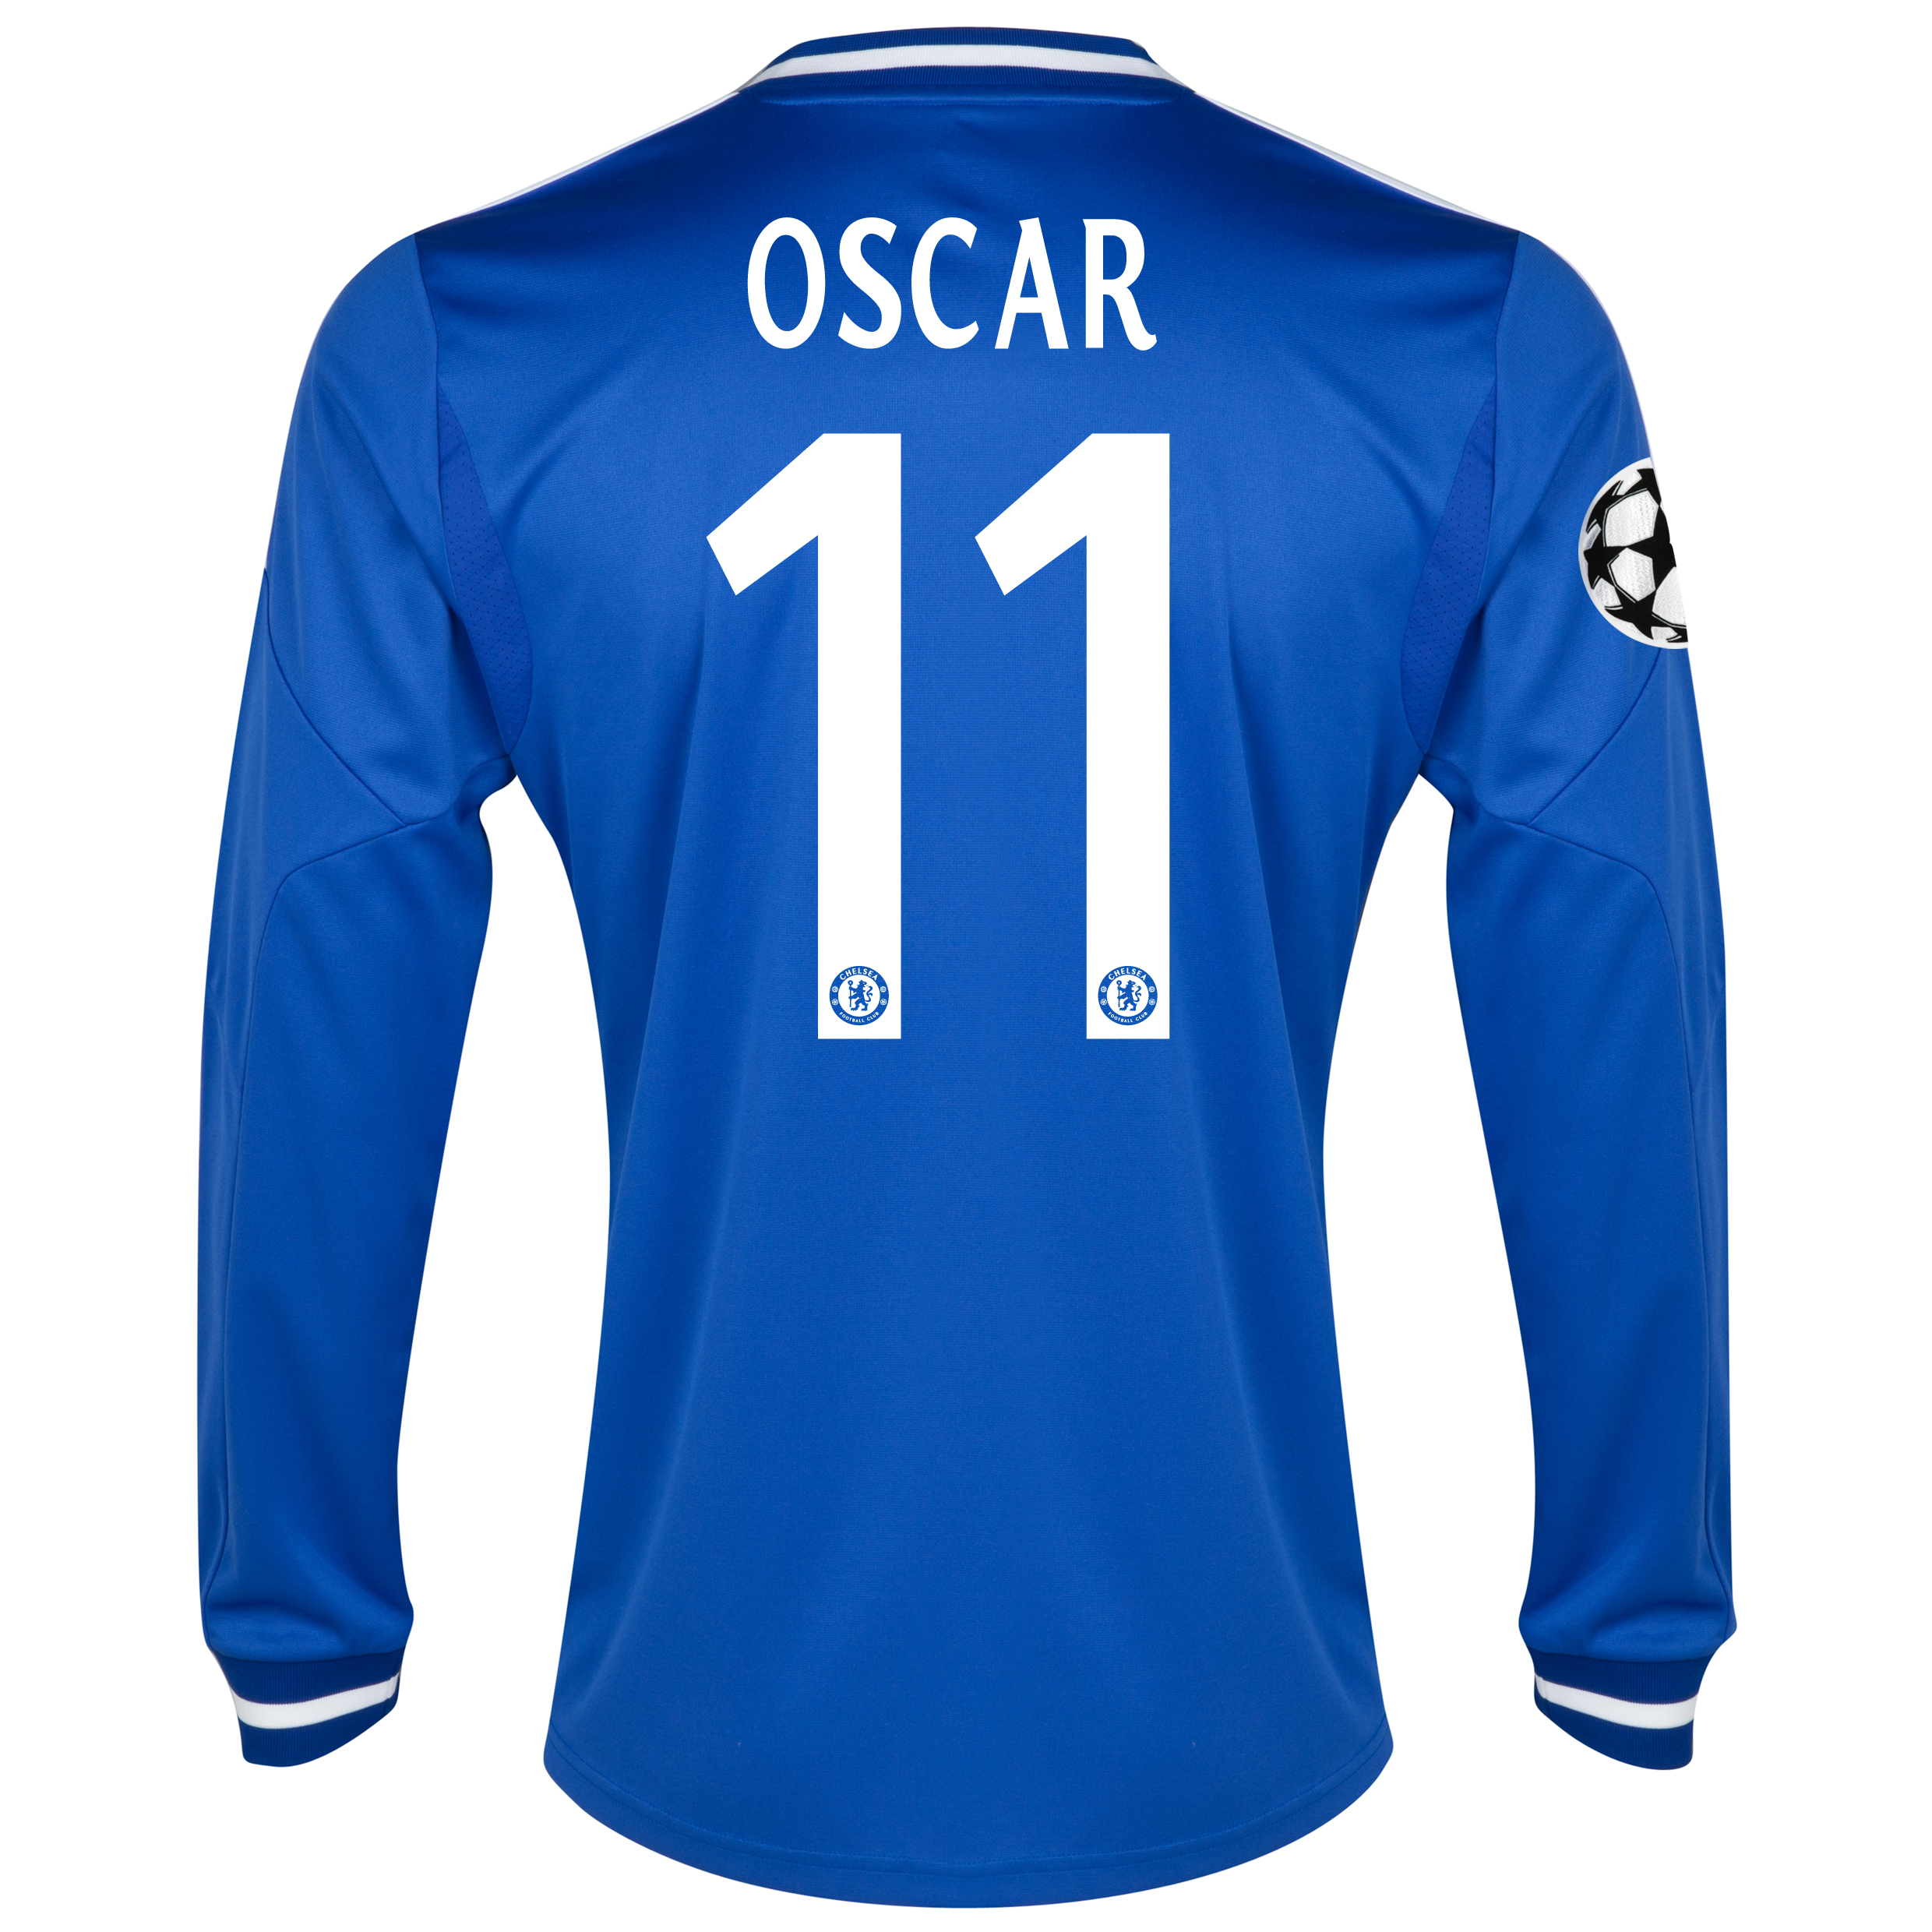 Chelsea UEFA Champions League Home Shirt 2013/14 - Long Sleeve with Oscar 11 printing